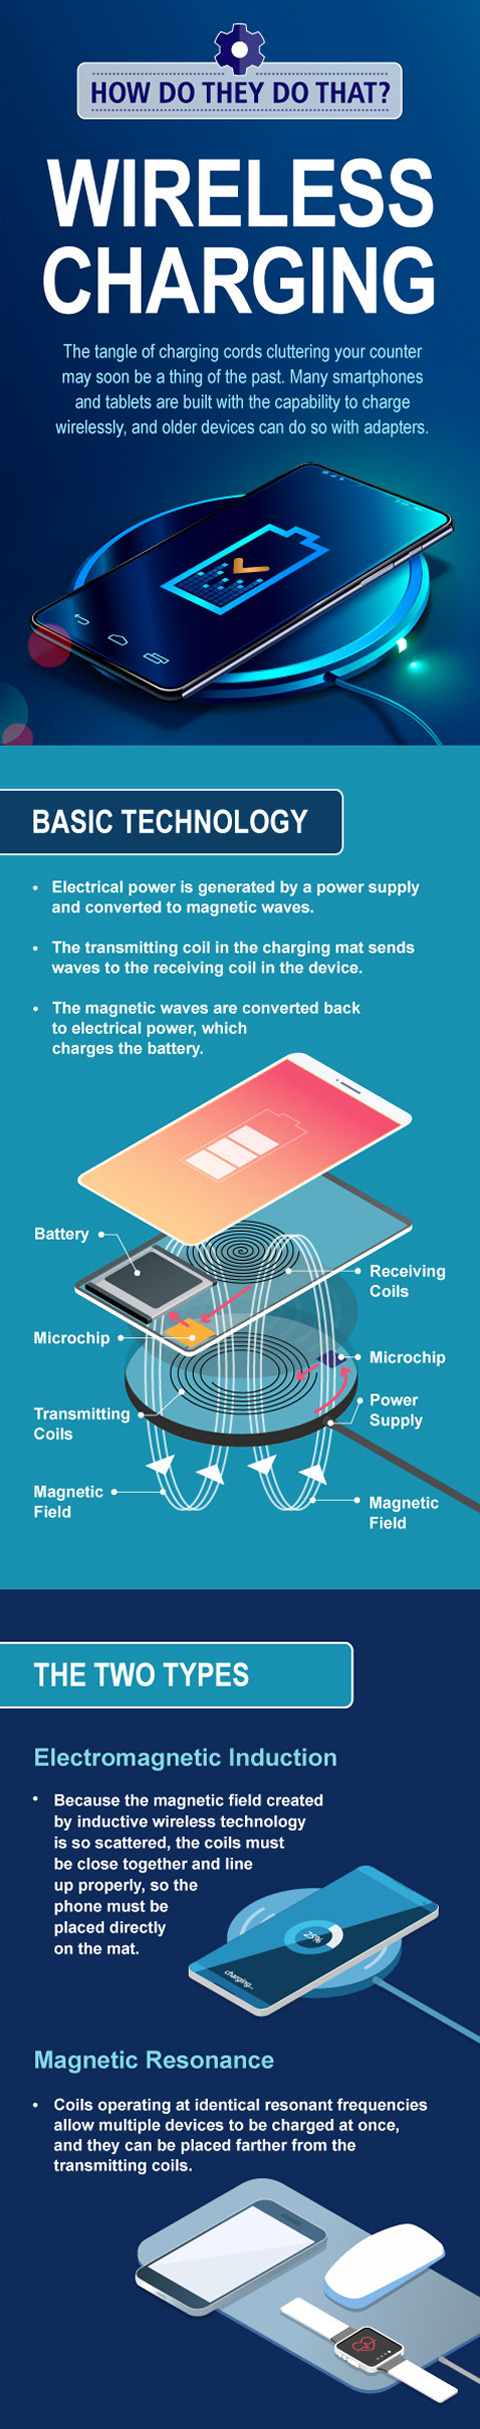 Infographic HDTDT Wireless Charging